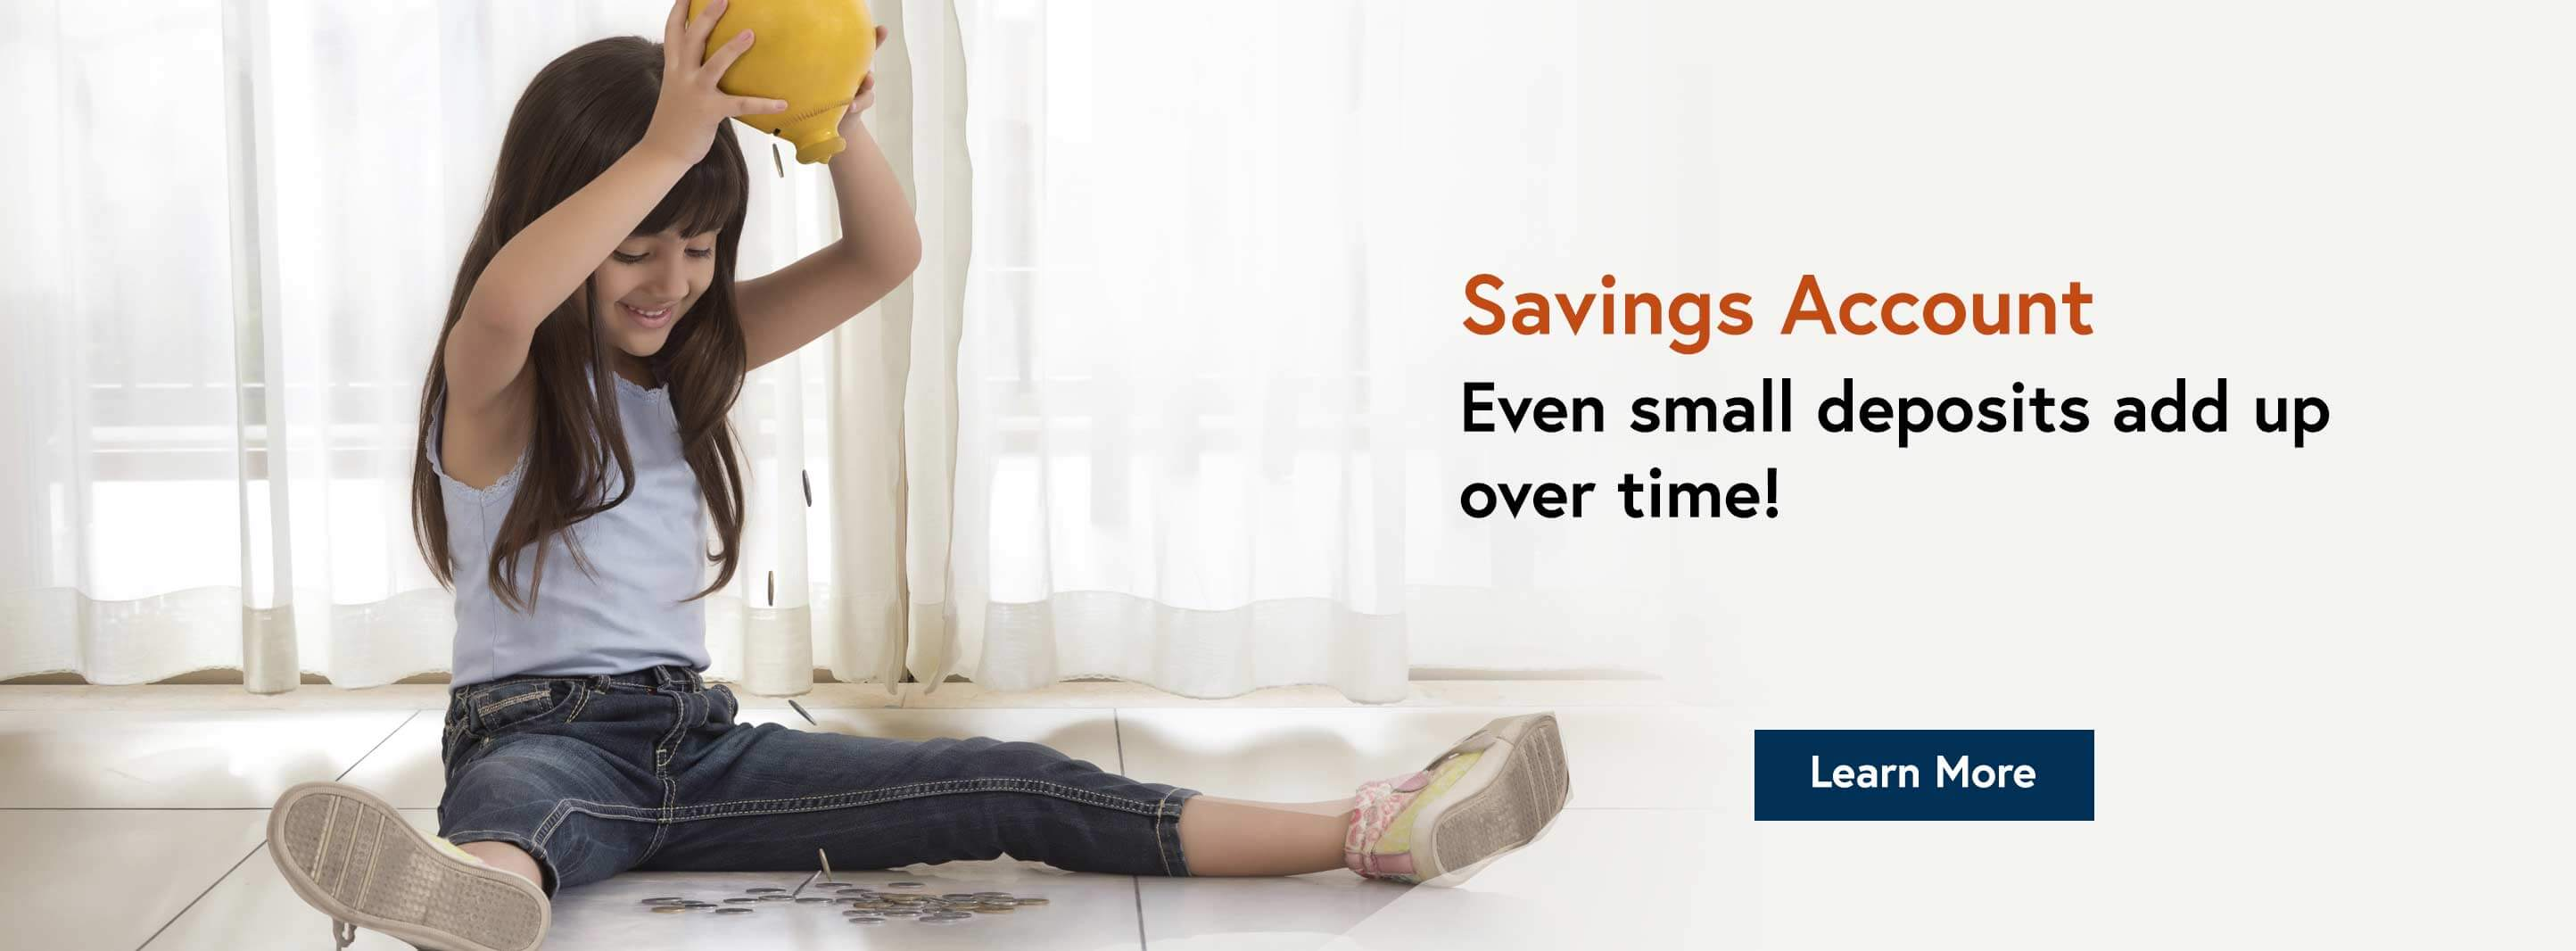 Savings Account. Even small deposits add up over time! Learn More.